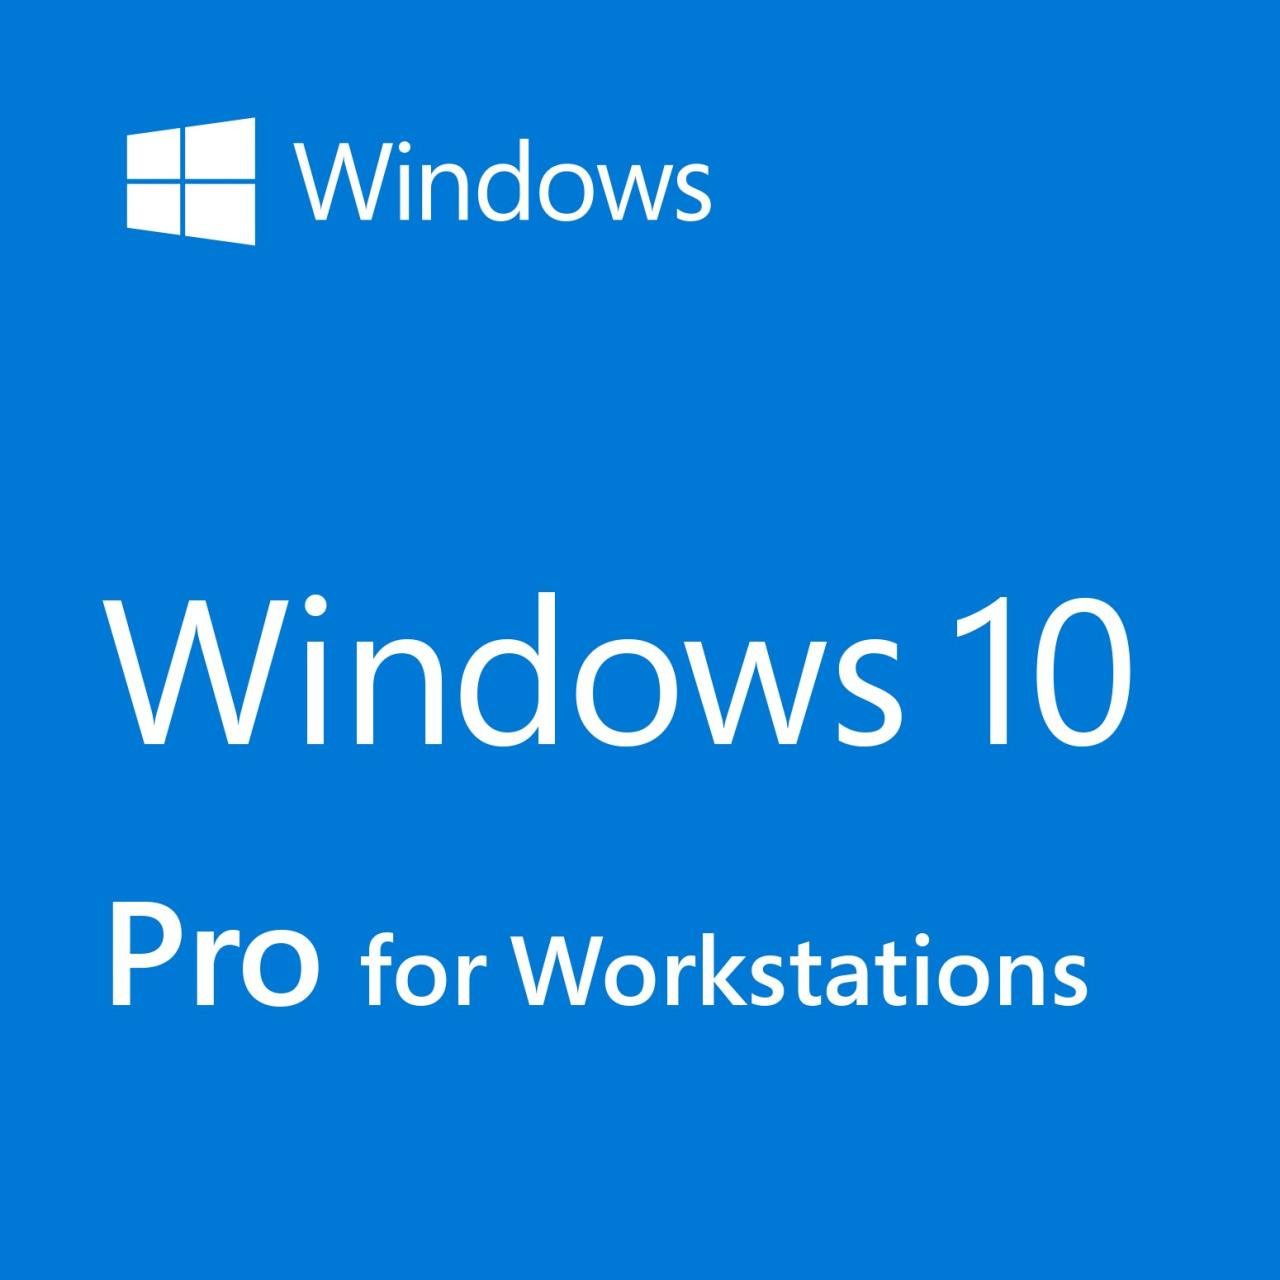 What version of Windows 10 you have installed. How to Check?